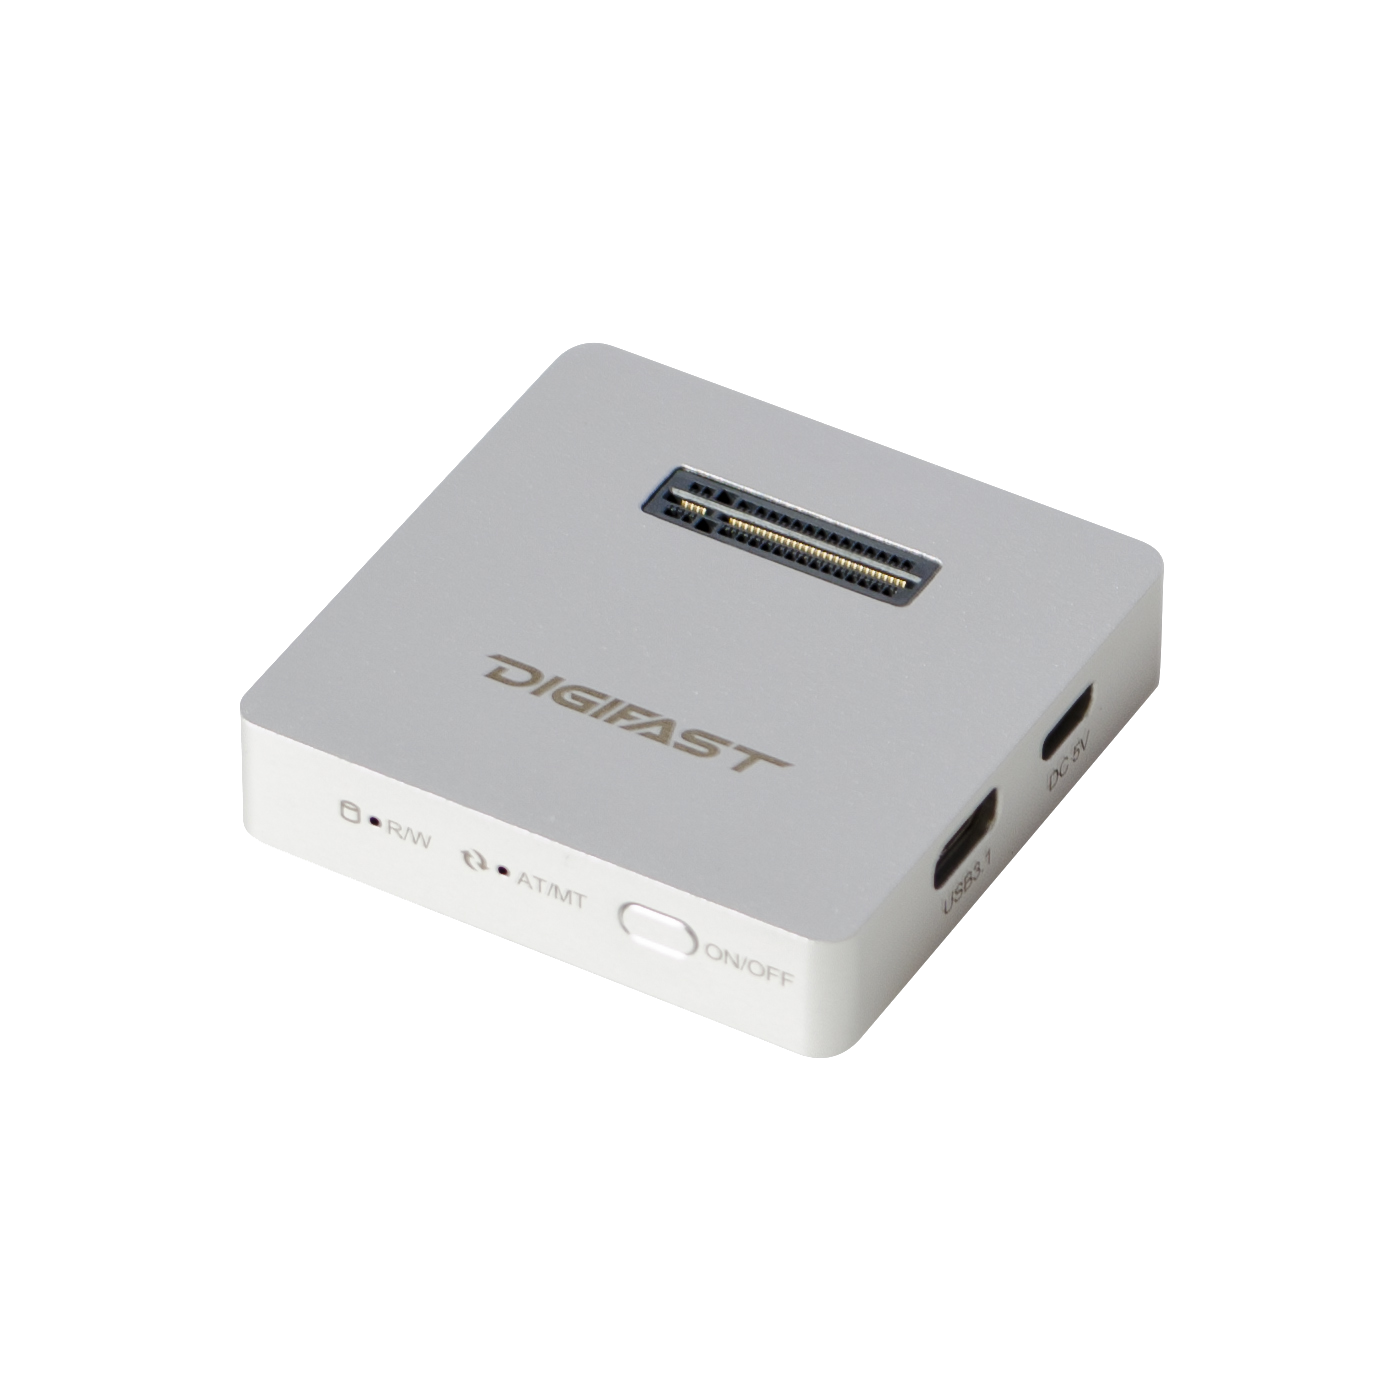 Digifast M.2 NVMe SSD Docking Base, USB3.2 GEN2 Type-C (10 Gbps), Lightweight, Portable Design - Silver